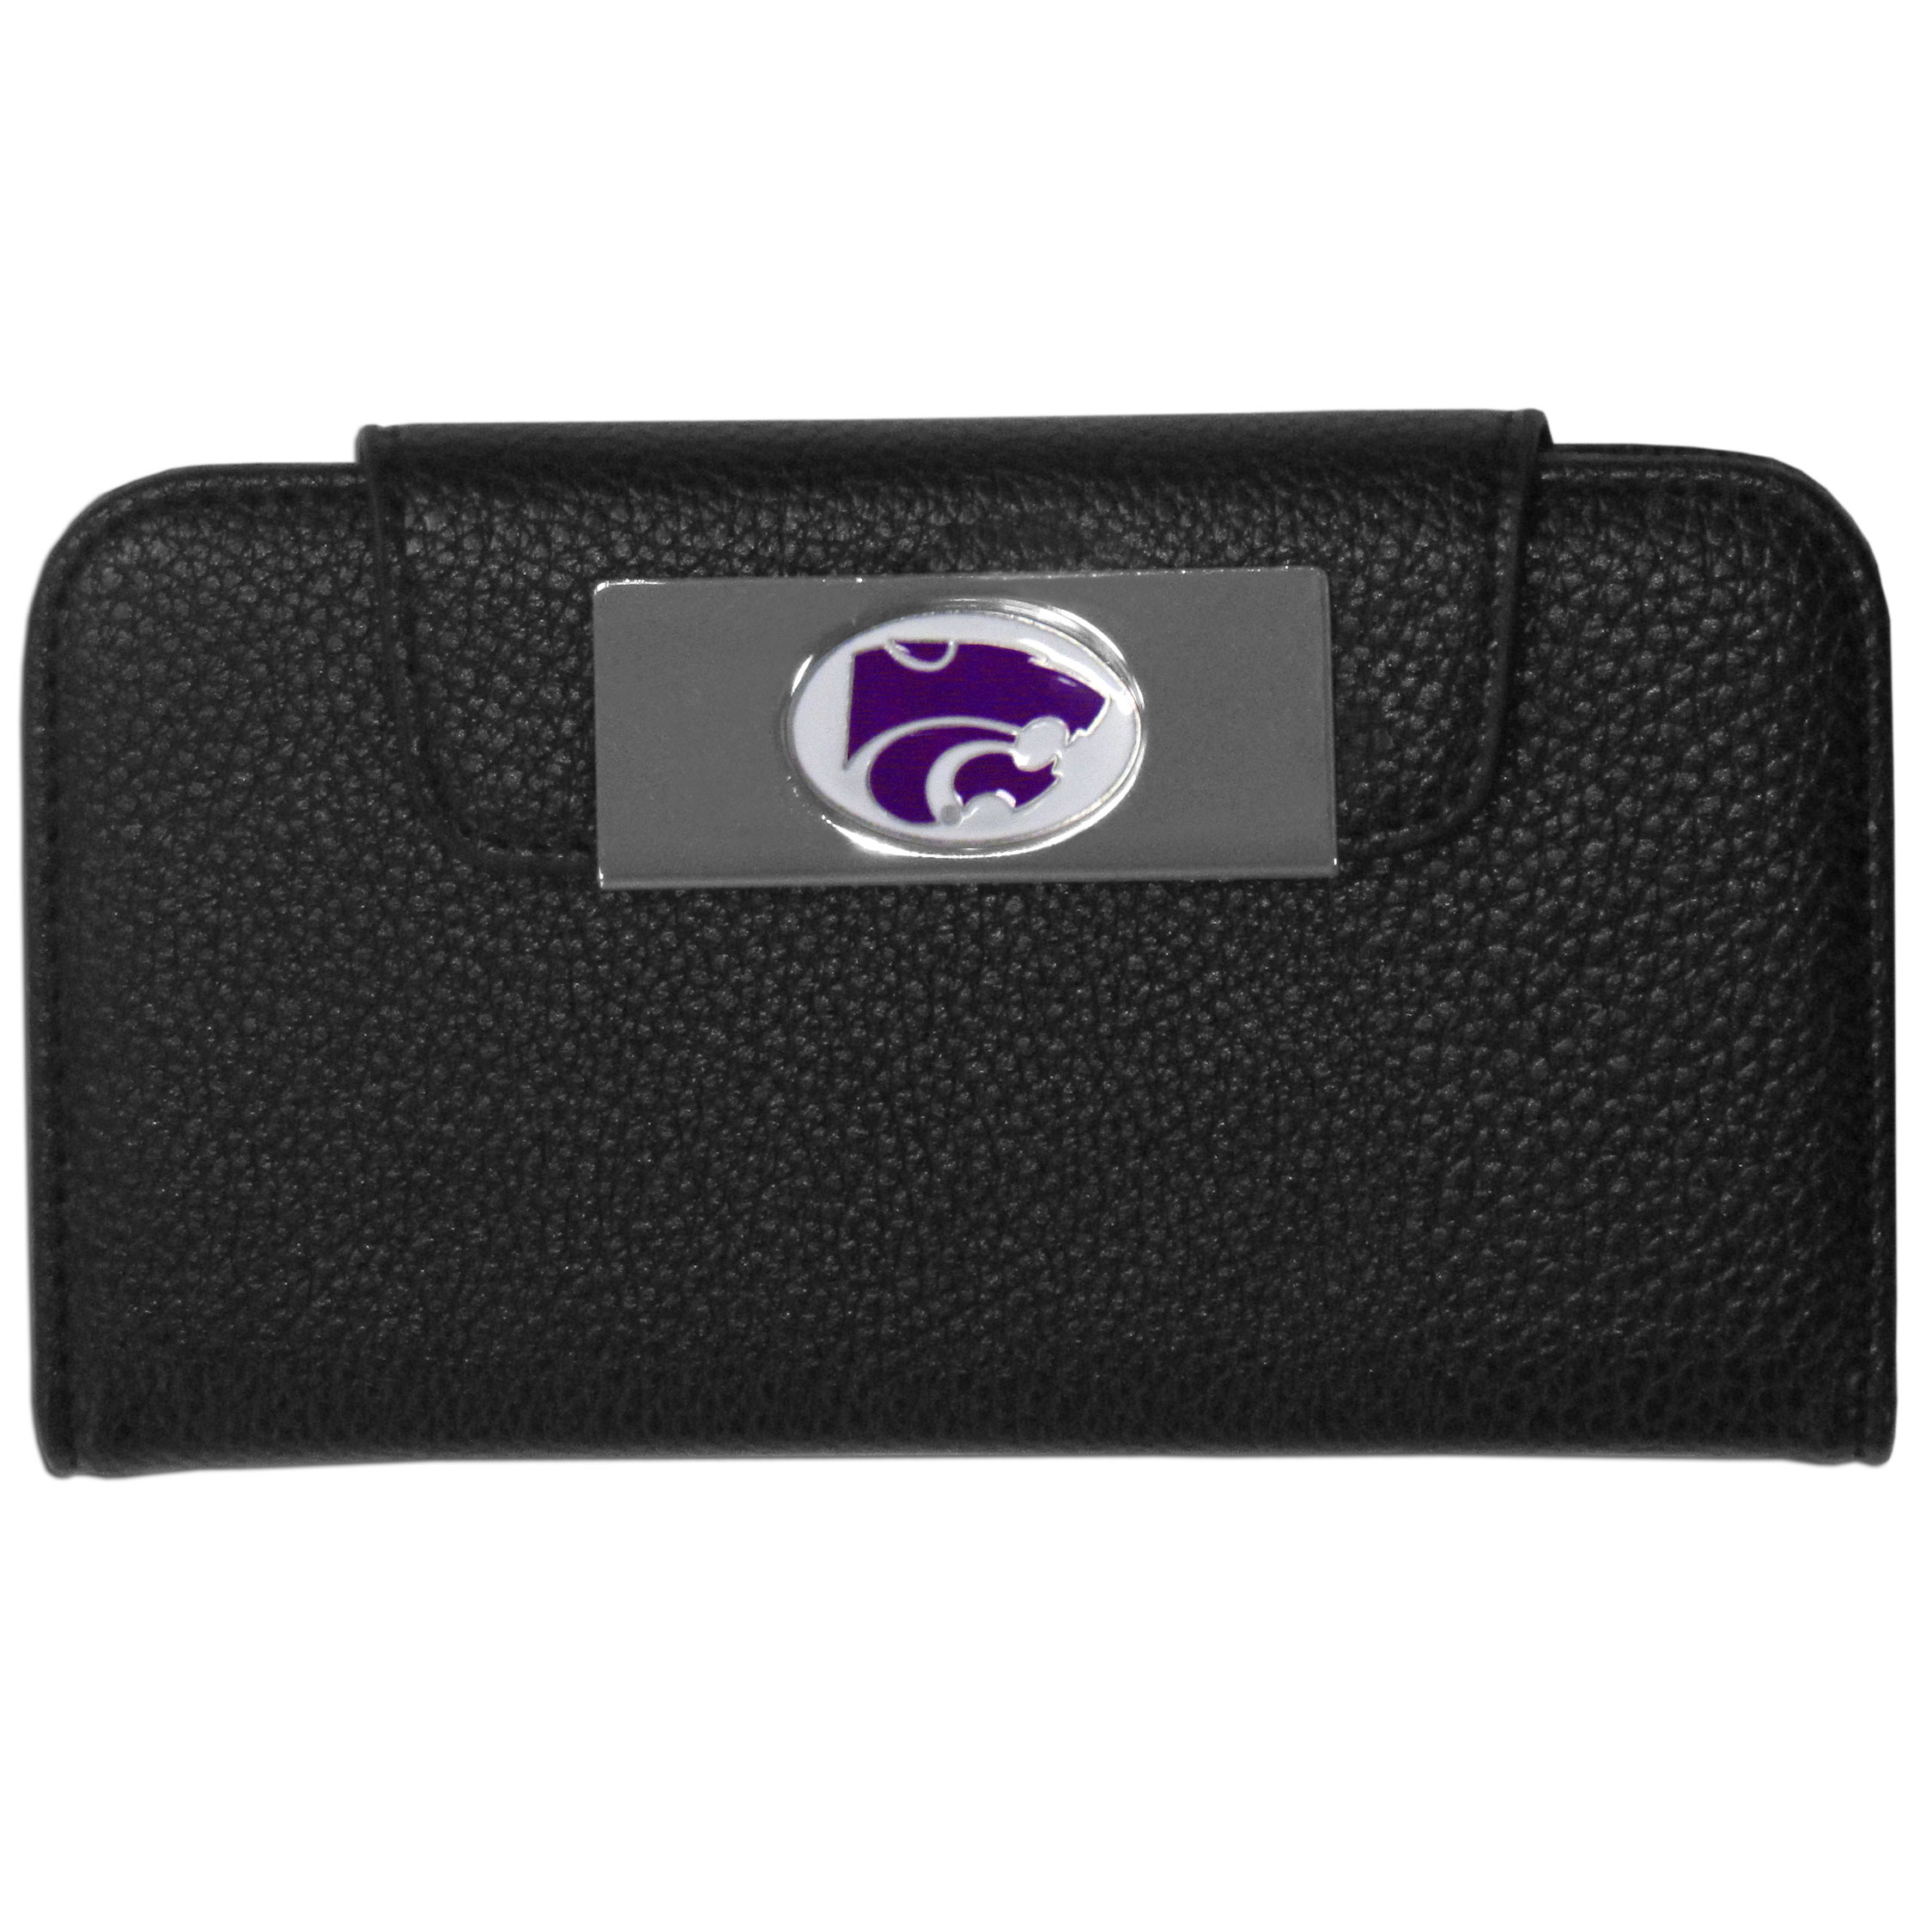 Kansas St. Wildcats iPhone 5/5S Wallet Case - This new & wildly popular case is ideal for those who like to travel light! The stylish case has an inner hard shell that securely holds your phone while allowing complete access to the phone's functionality. The flip cover has slots for credit cards, business cards and identification. The magnetic flip cover has a metal Kansas St. Wildcats emblem on a high polish chrome backing. Fits the iPhone 5/5S